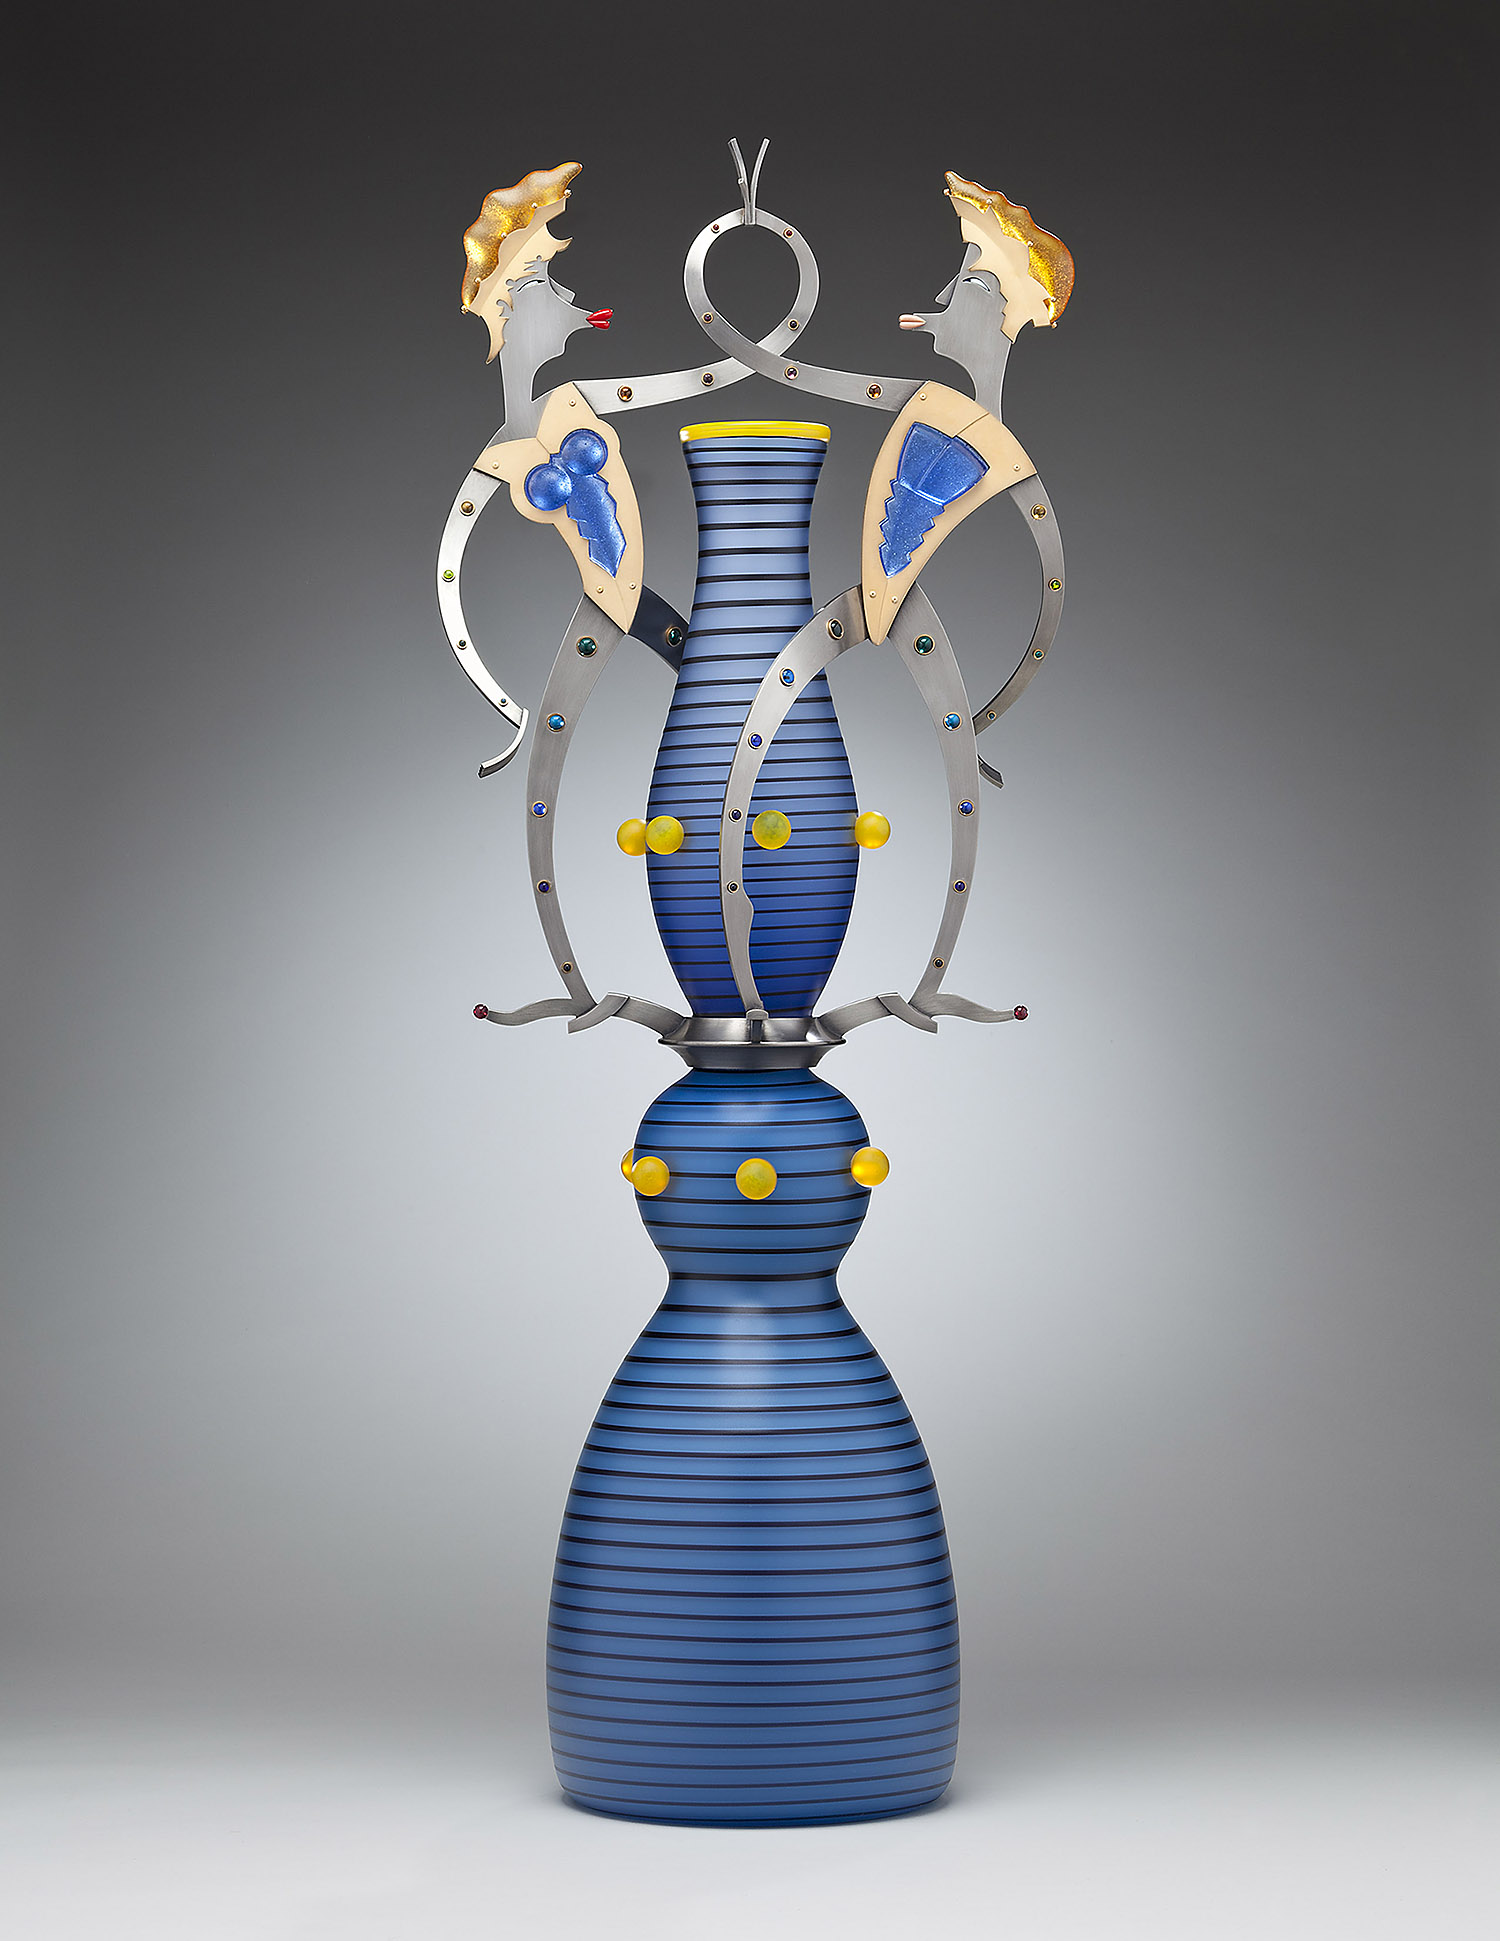 Smoochers   2010. Blown glass, nickel and gold-plated bronze, Vitrolite, pate de verre. 42 x 16½ x 10""